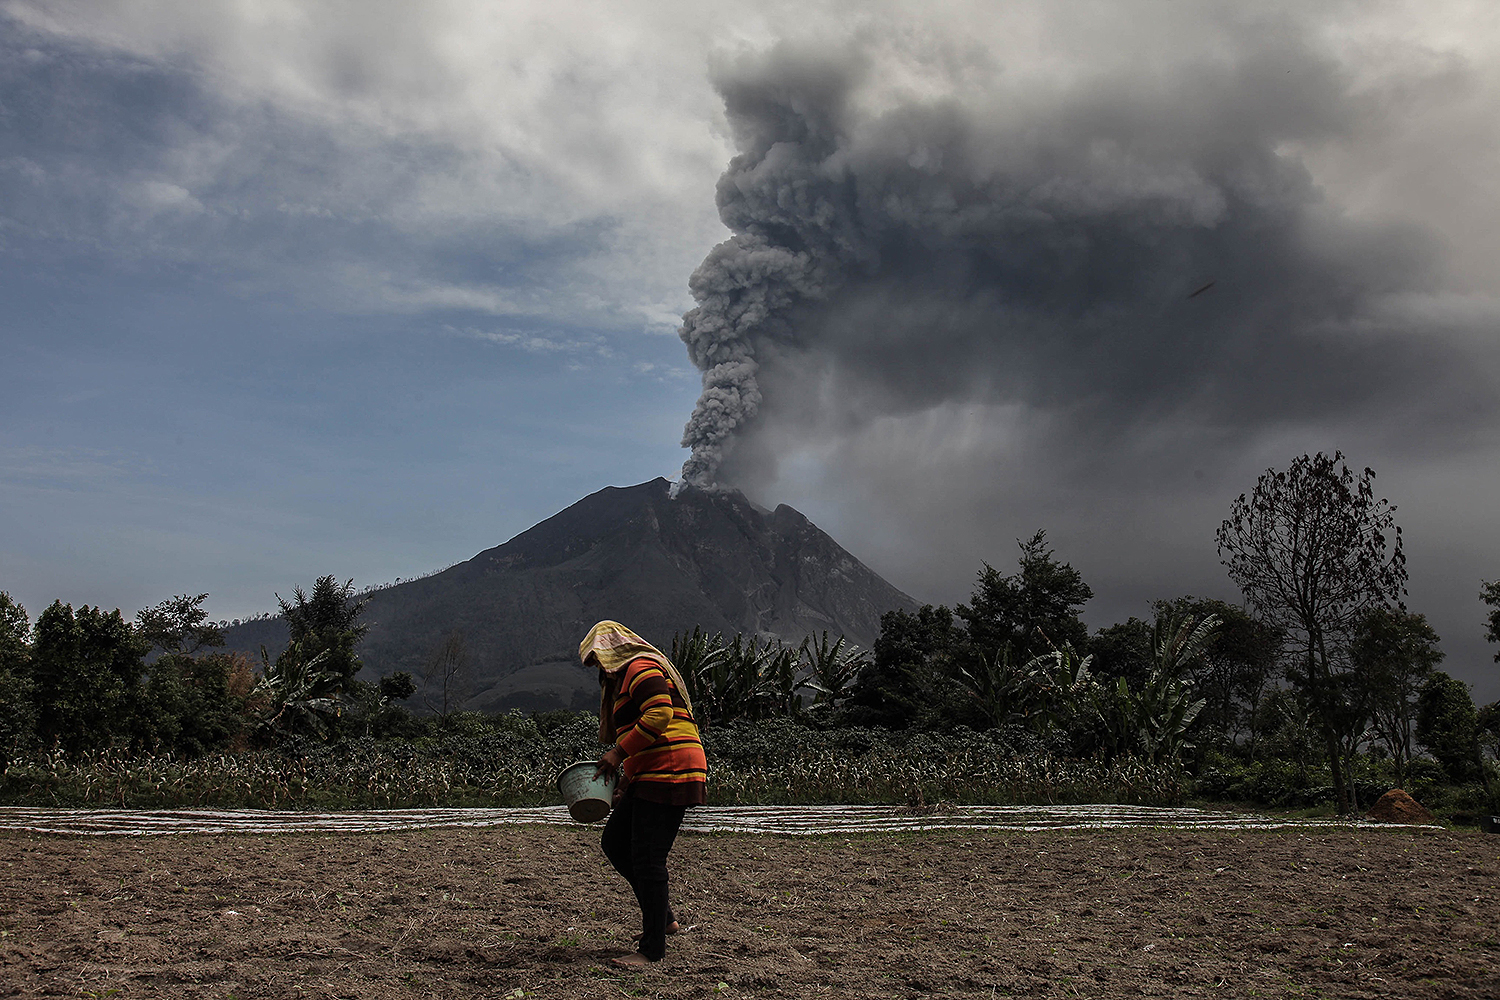 A farmer works in a field as Mount Sinabung spews thick ash into the air in Karo, North Sumatra, Indonesia, on Aug. 18. IVAN DAMANIK/AFP via Getty Images